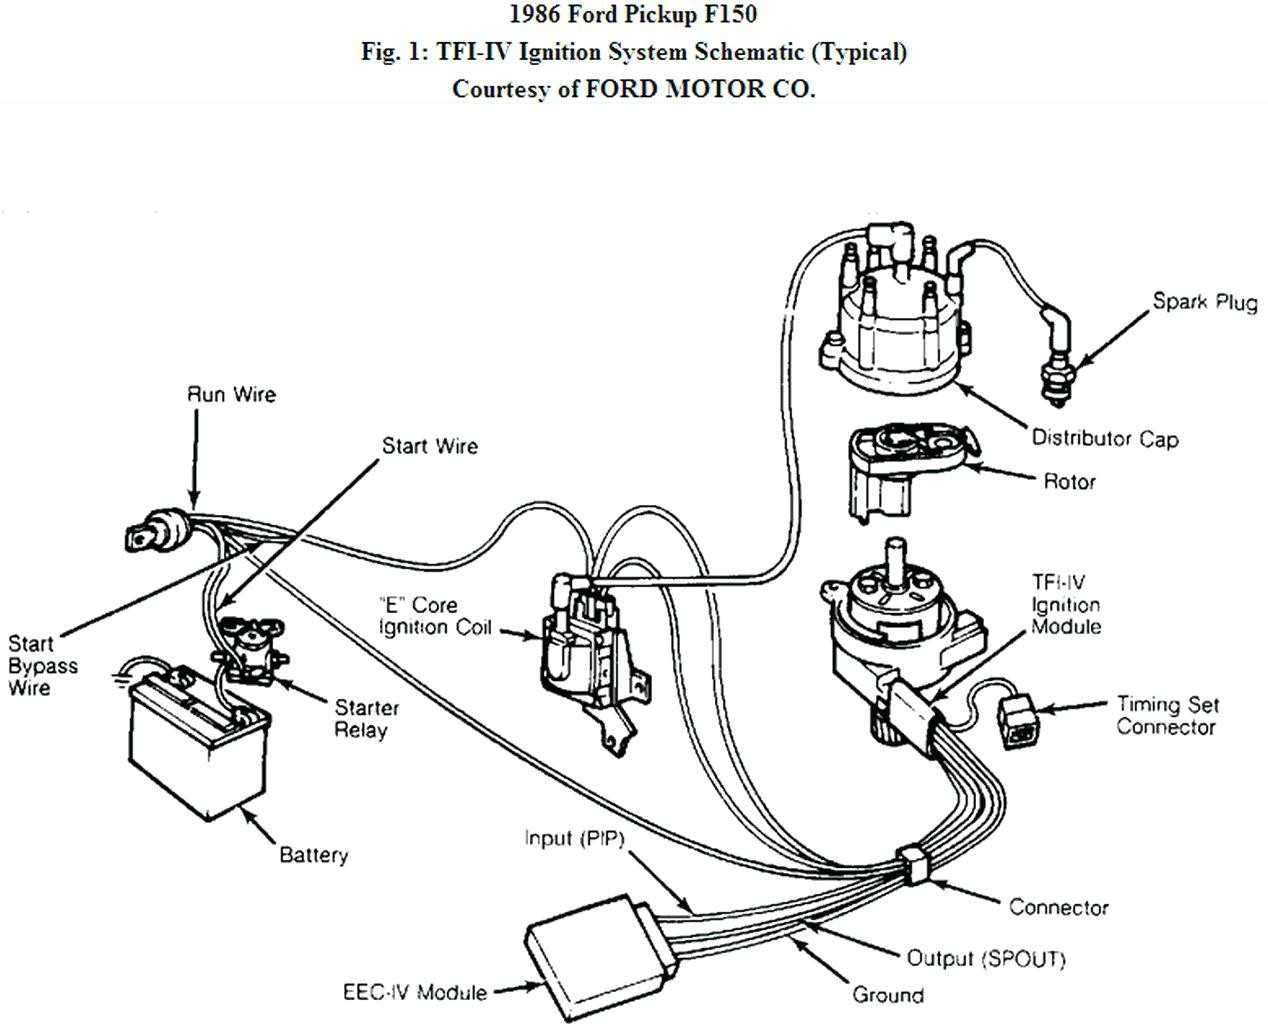 F150 5 0 Engine Diagram